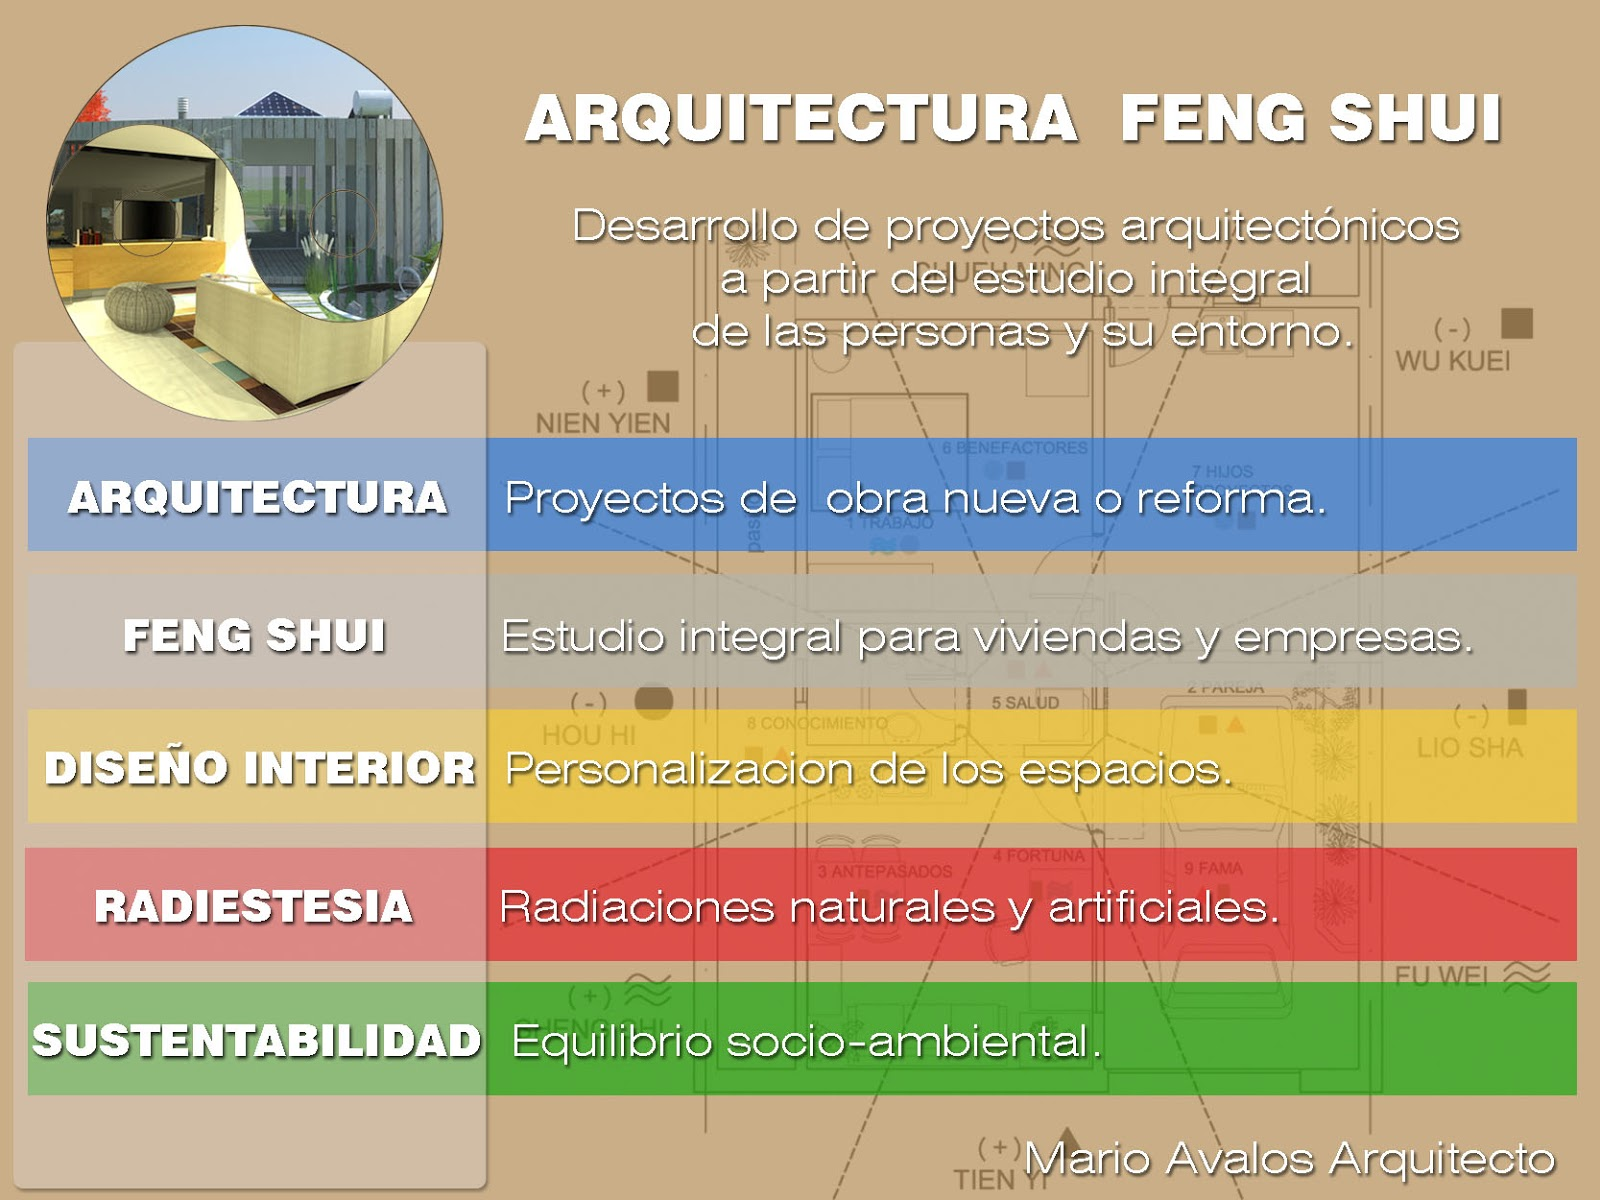 Arquitectura y feng shui asesoria - Arquitectura feng shui ...